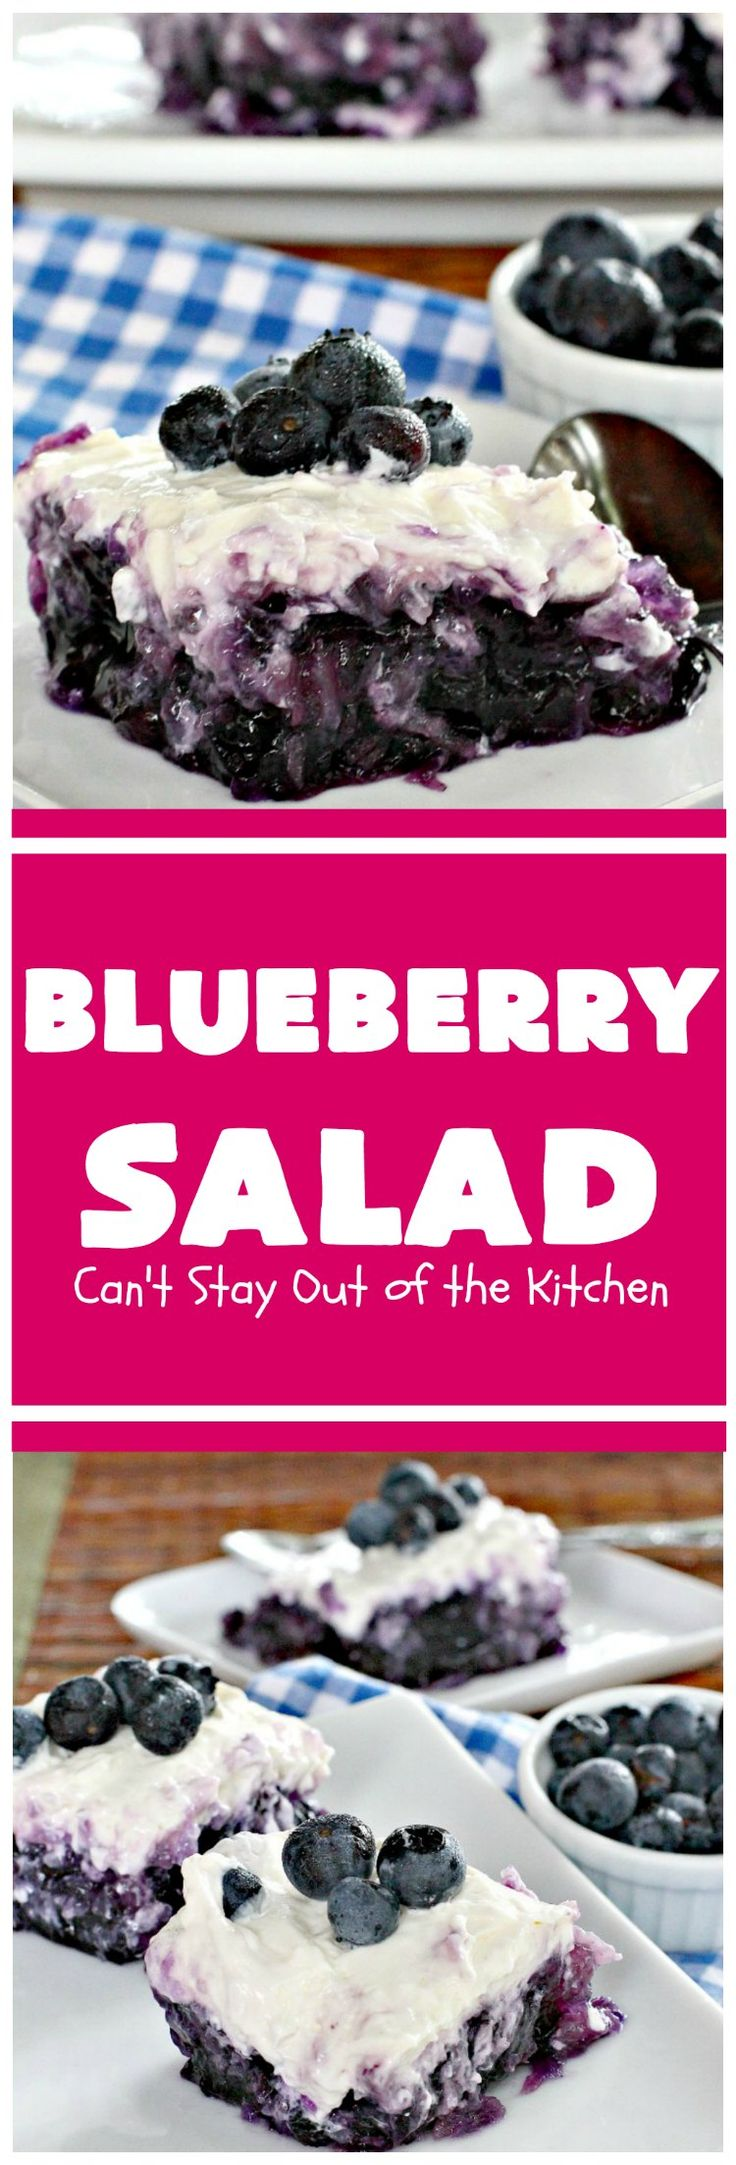 Blueberry Salad | Can't Stay Out of the Kitchen | this is one of our favorite side dishes. It uses #blueberry pie filling, #pineapple & has a #creamcheese topping. It's perfect for any #holiday menu. #salad #glutenfree